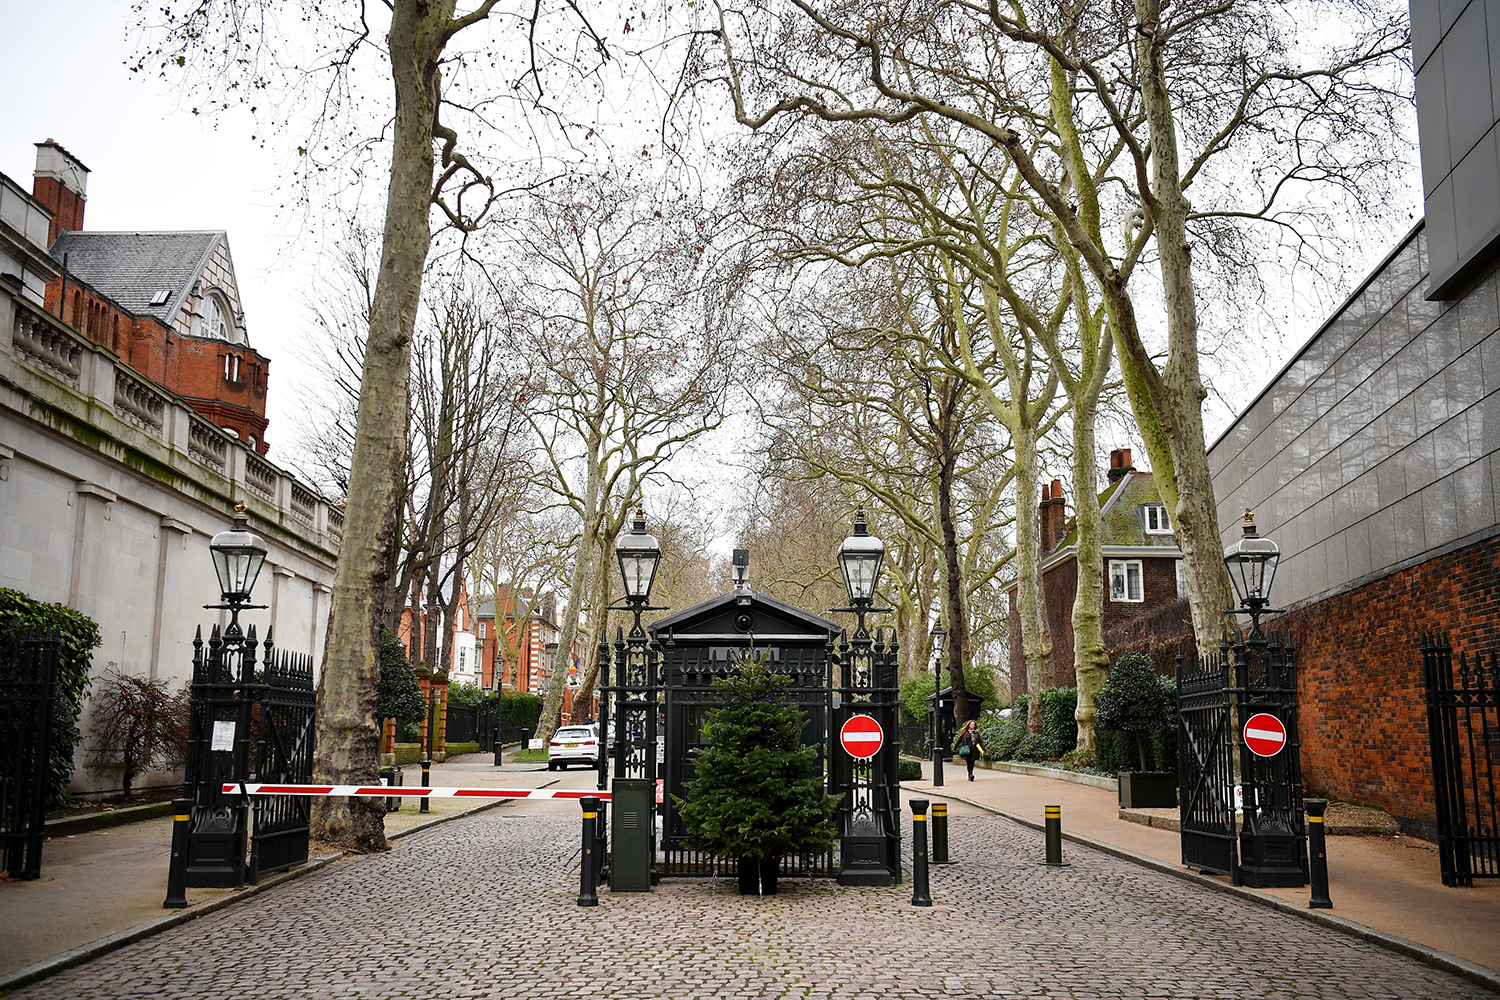 A general view of the security gates at Palace Green, the location of Tamara Ecclestone's home in Kensington , on December 16, 2019 in London, England. Thieves have stolen jewellery reportedly worth £50m from the home of Tamara Ecclestone. The Formula 1 heiress is currently on holiday in Lapland